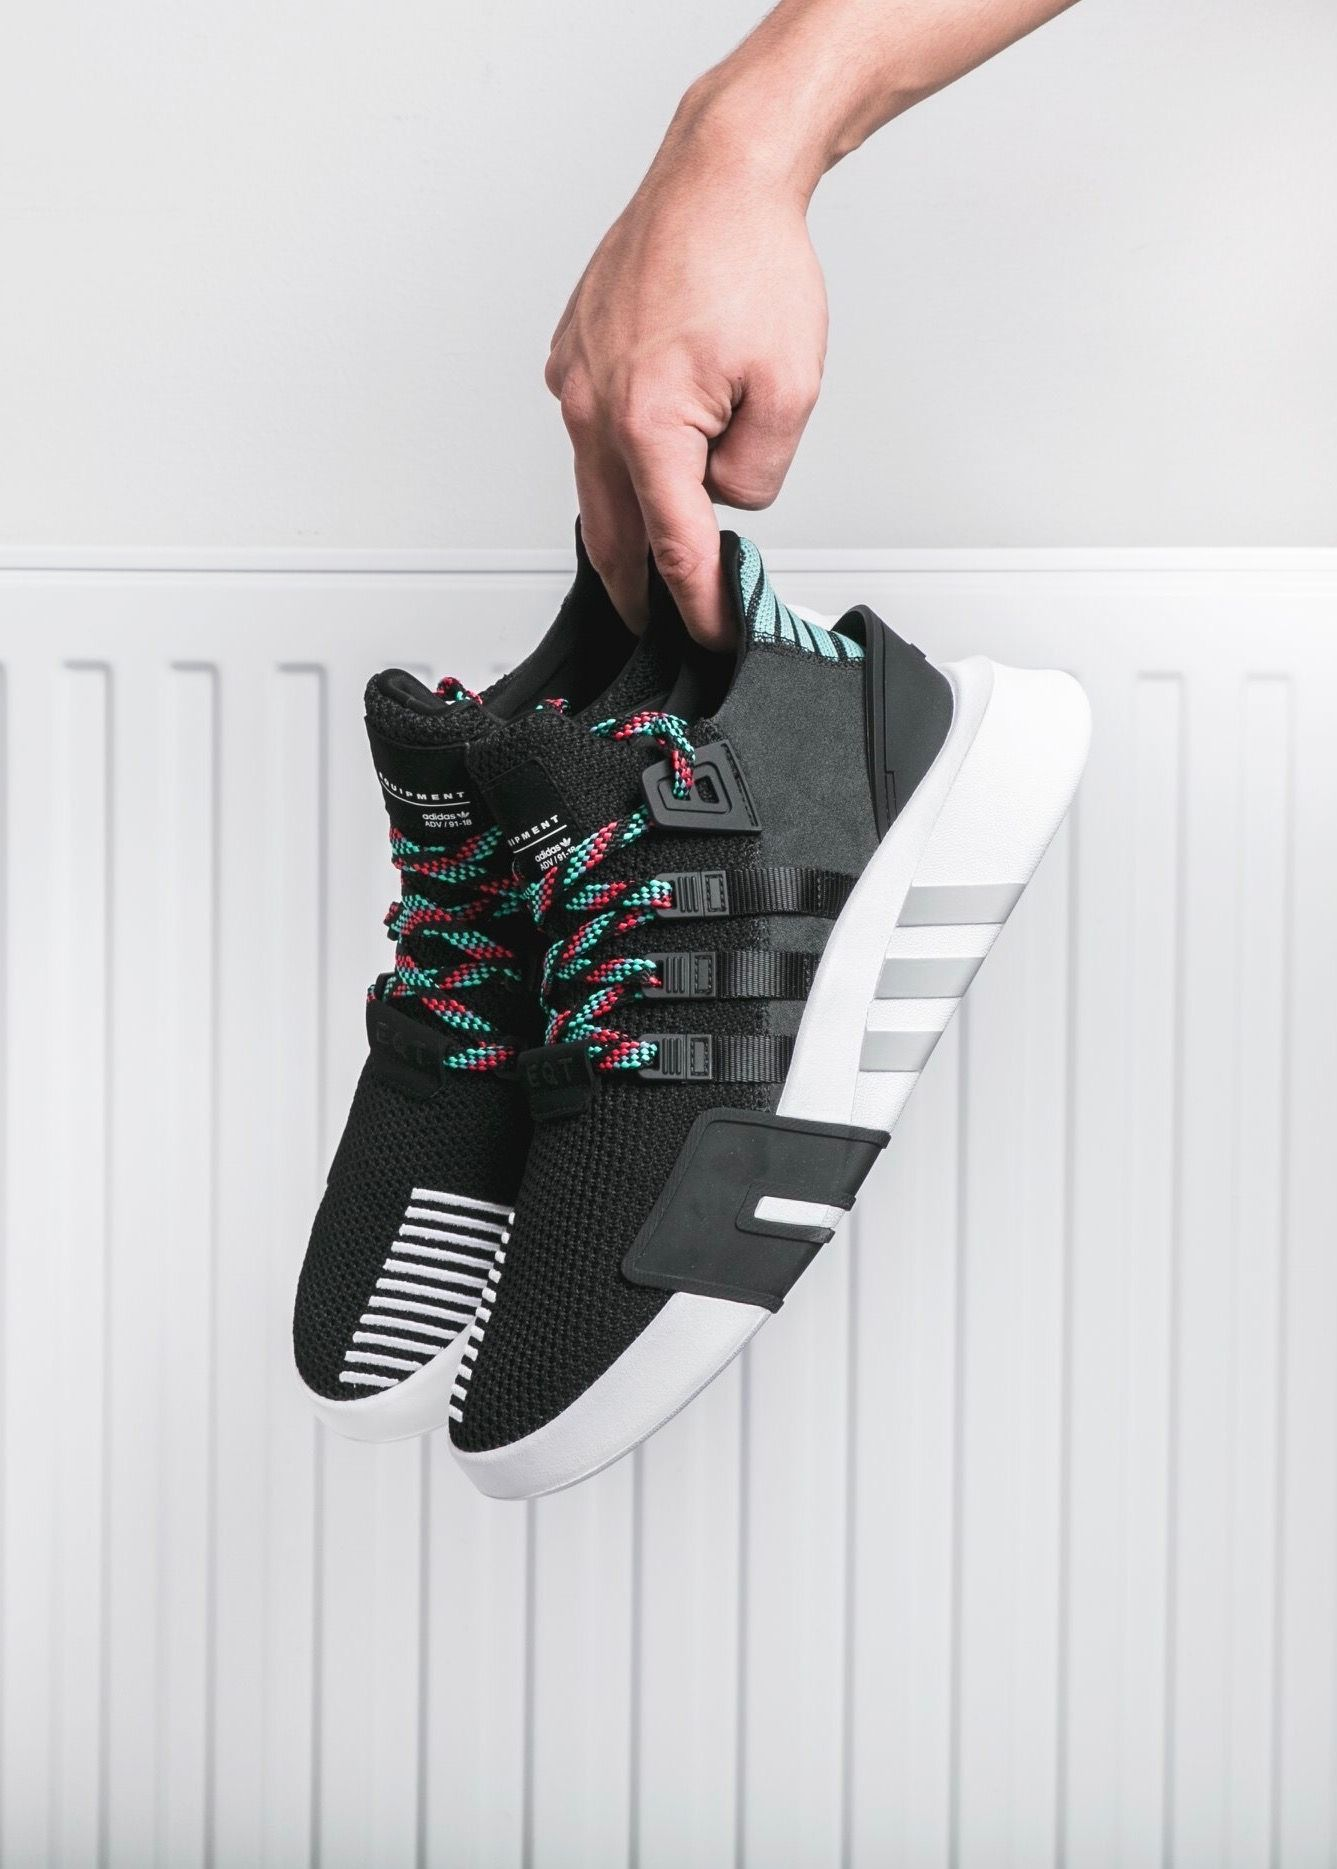 adidas EQT Basketball ADV Adidas Sneakers, Shoes Sneakers, Sneakers  Fashion, Streetwear Shoes, 44affdedb2